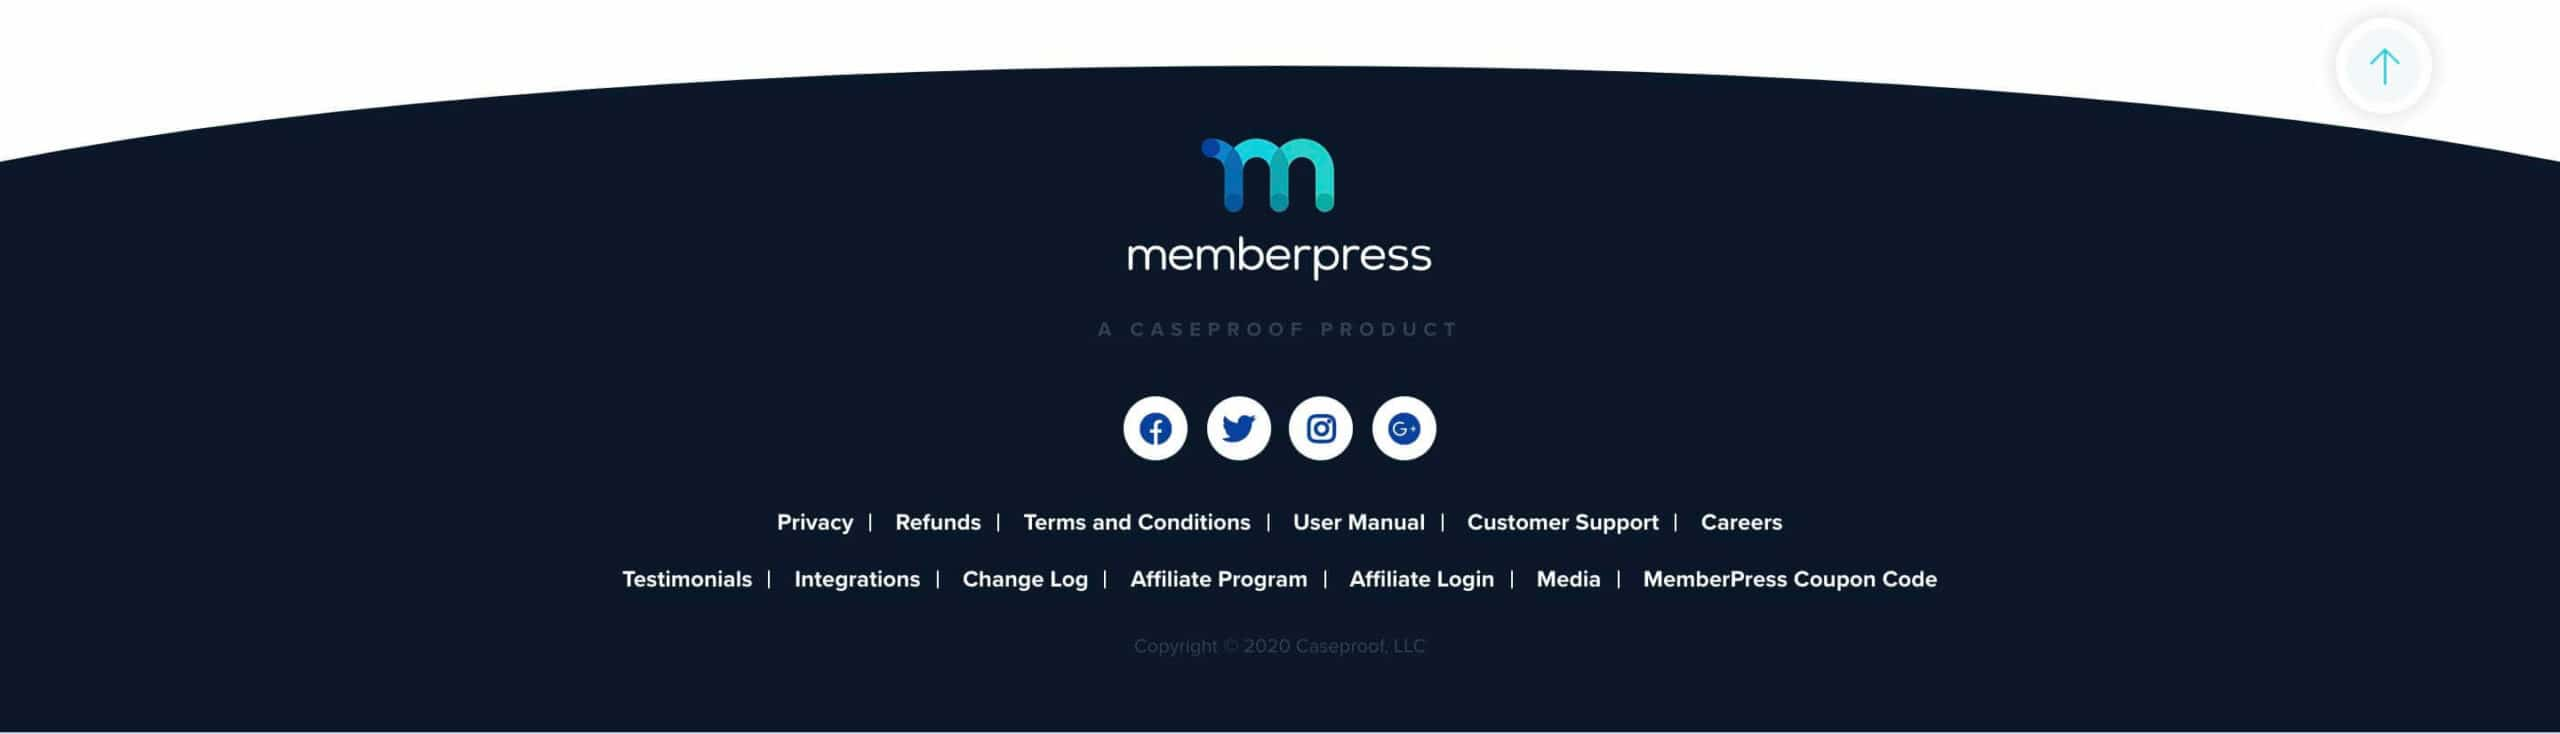 2020 Web Design Trends - Different Shaped Footers - Memberpress footer